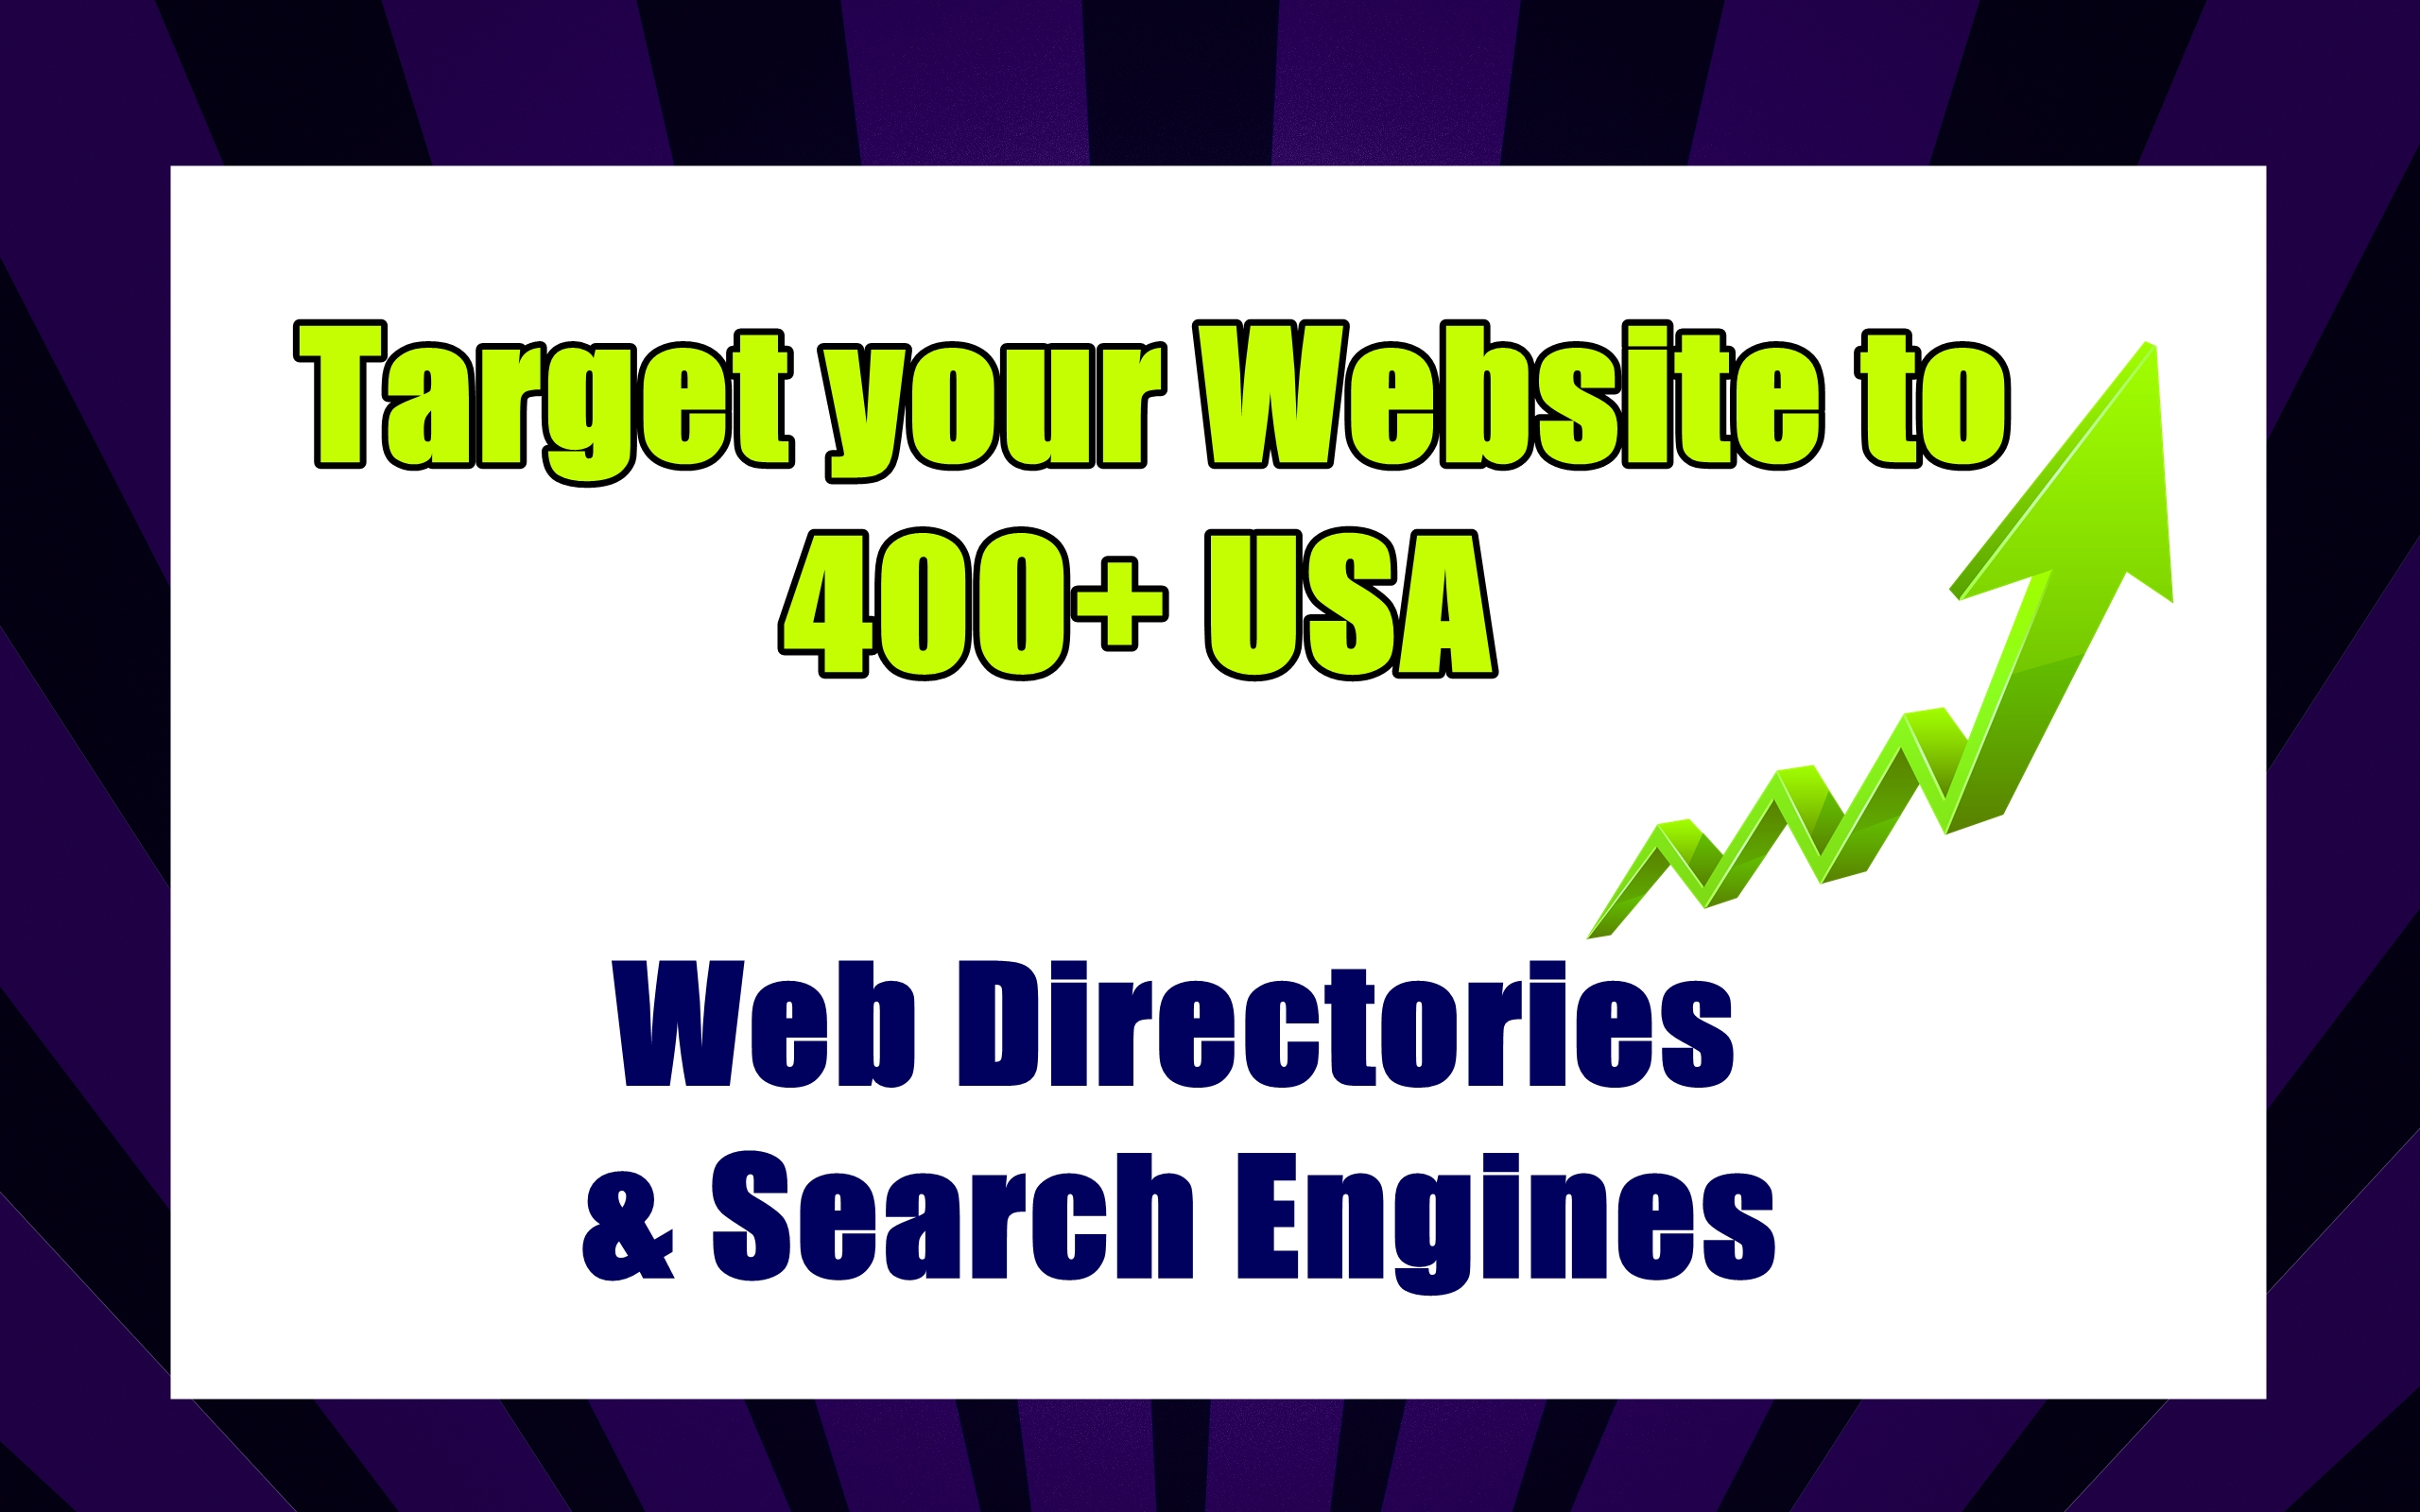 Target your Website to 400+ USA Web Directories & Search Engines